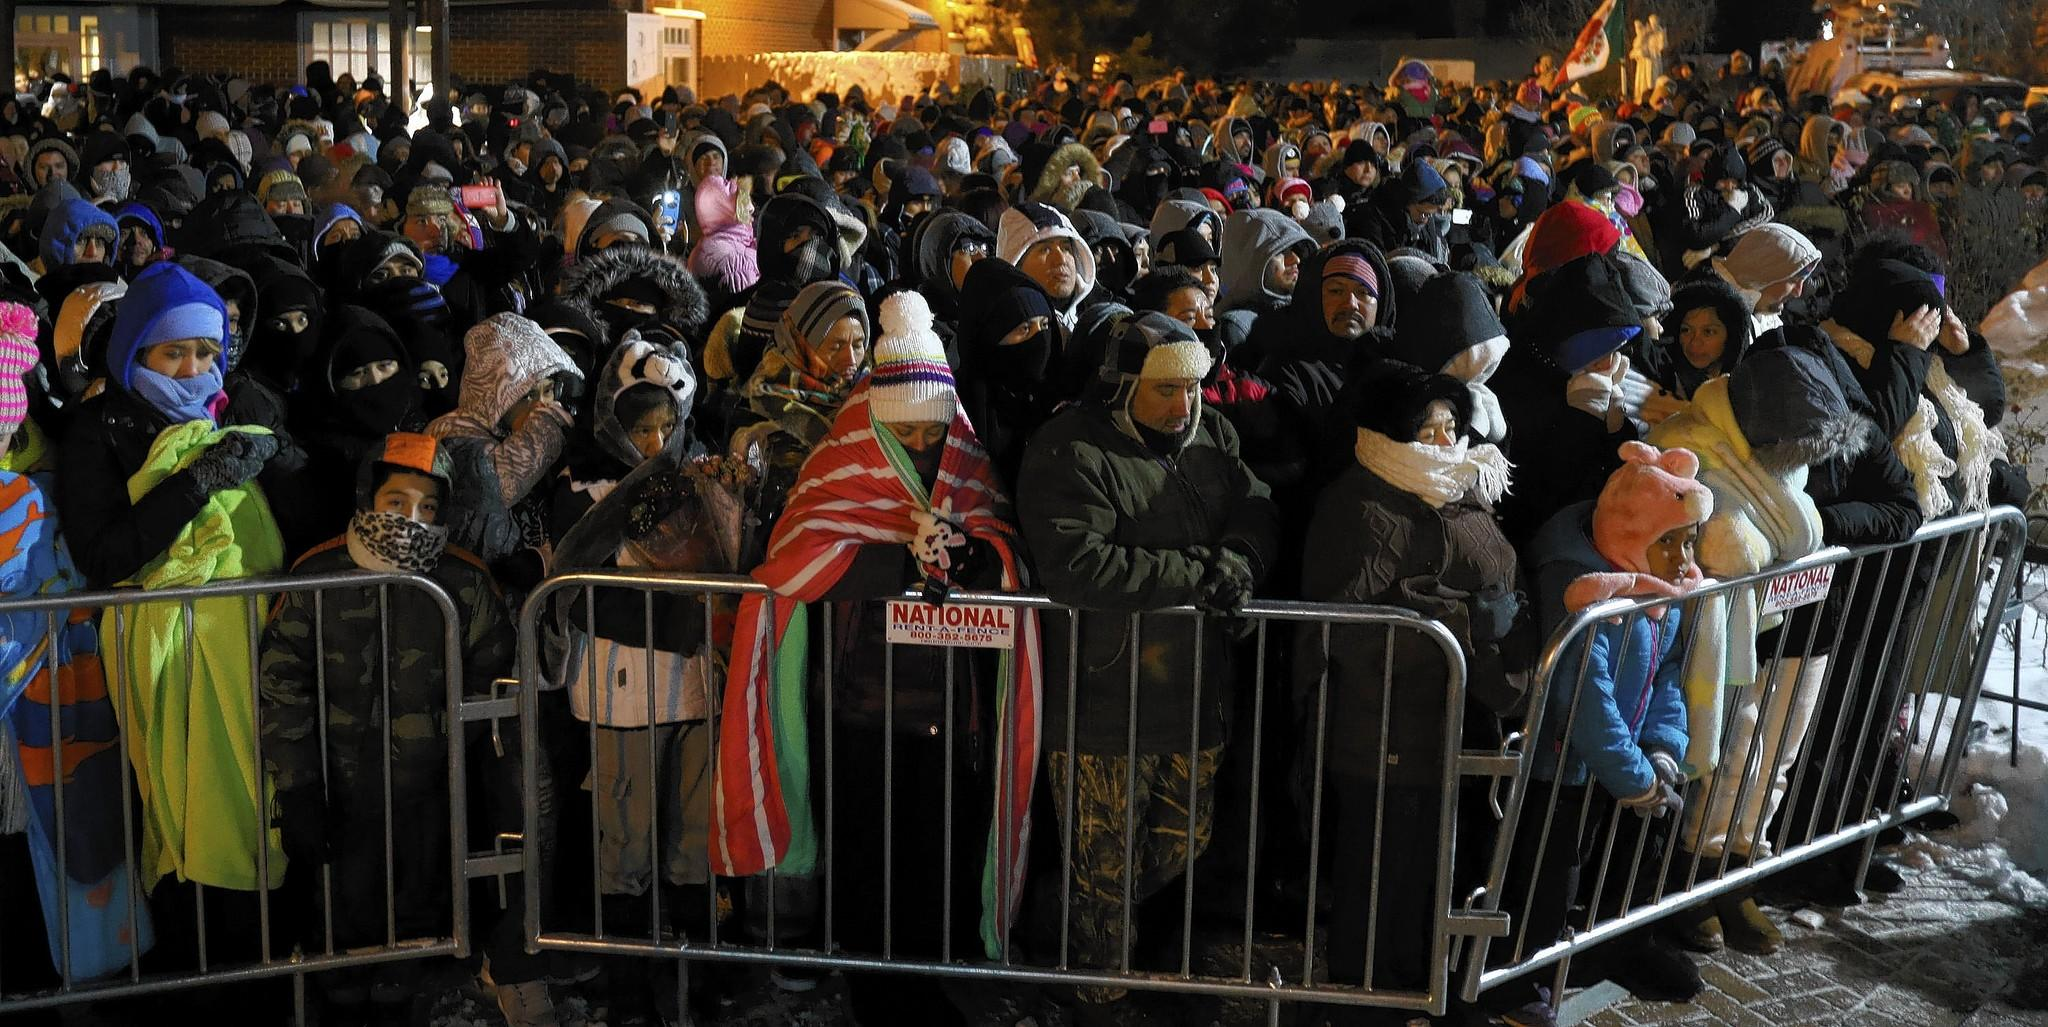 The faithful attend a Des Plaines celebration of Our Lady of Guadalupe in December. Police billed $30,000 for security.